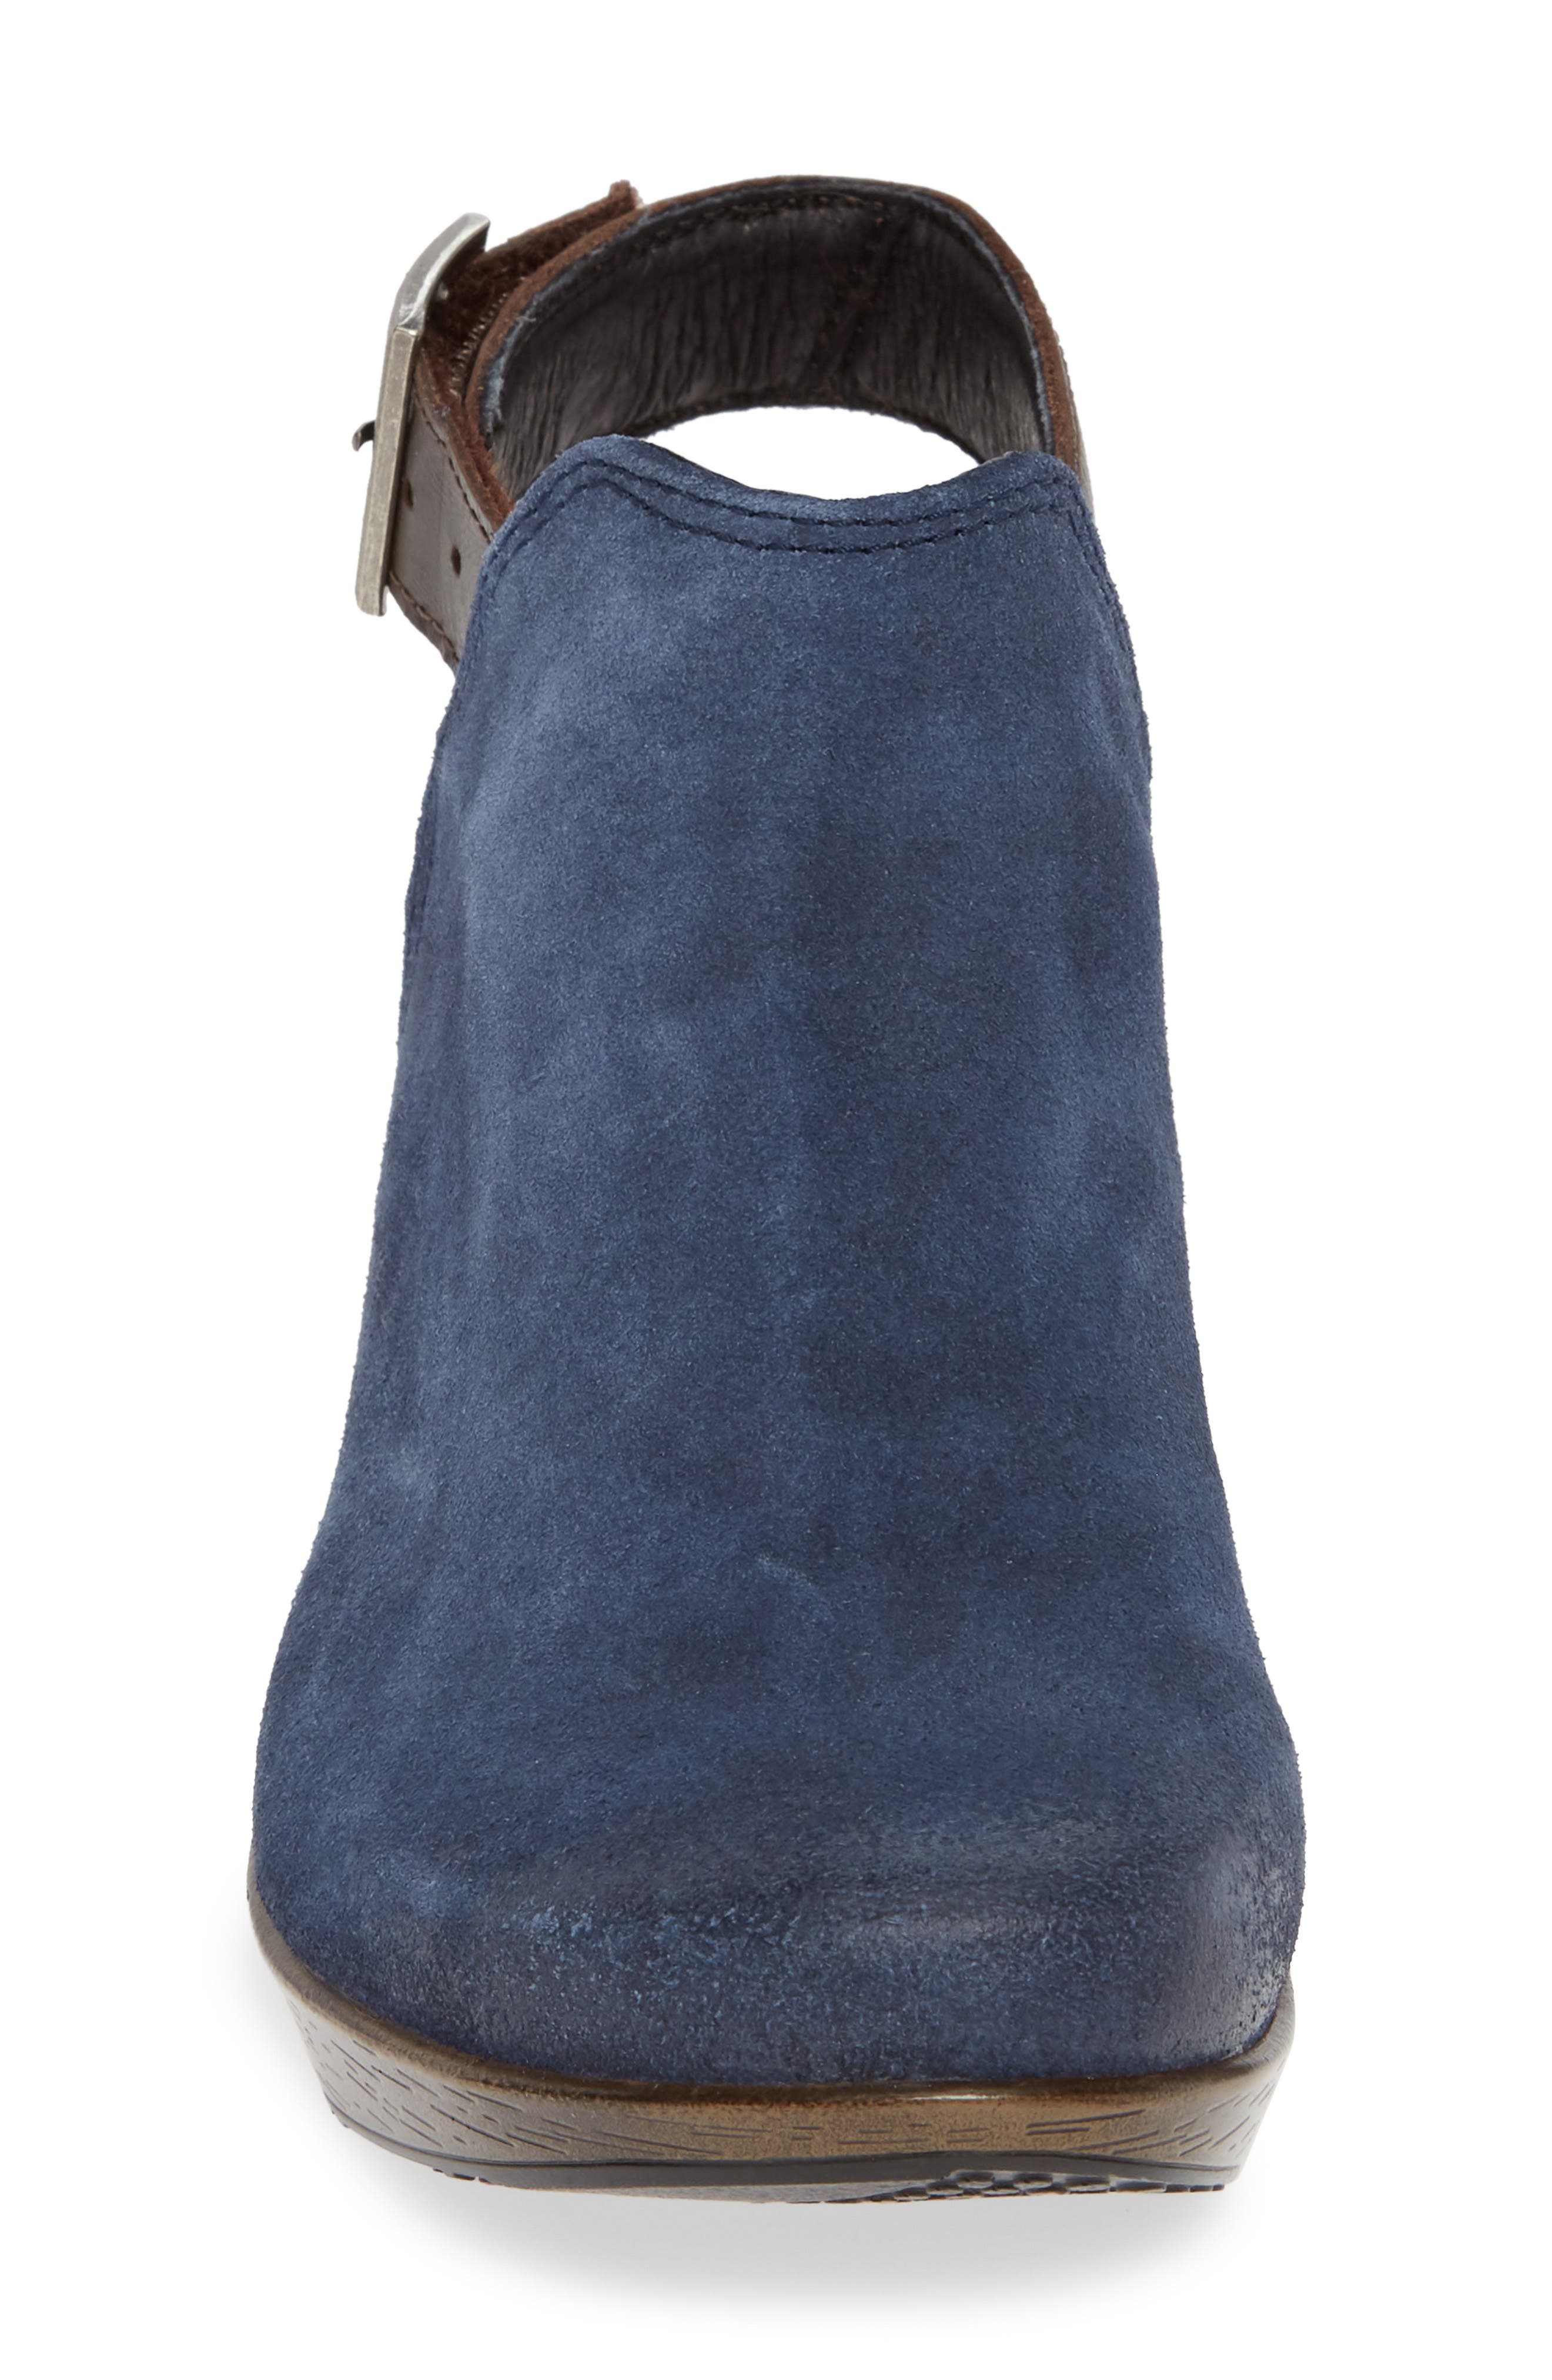 Upgrade Bootie,                             Alternate thumbnail 4, color,                             BLUE/ WALNUT SUEDE/ LEATHER